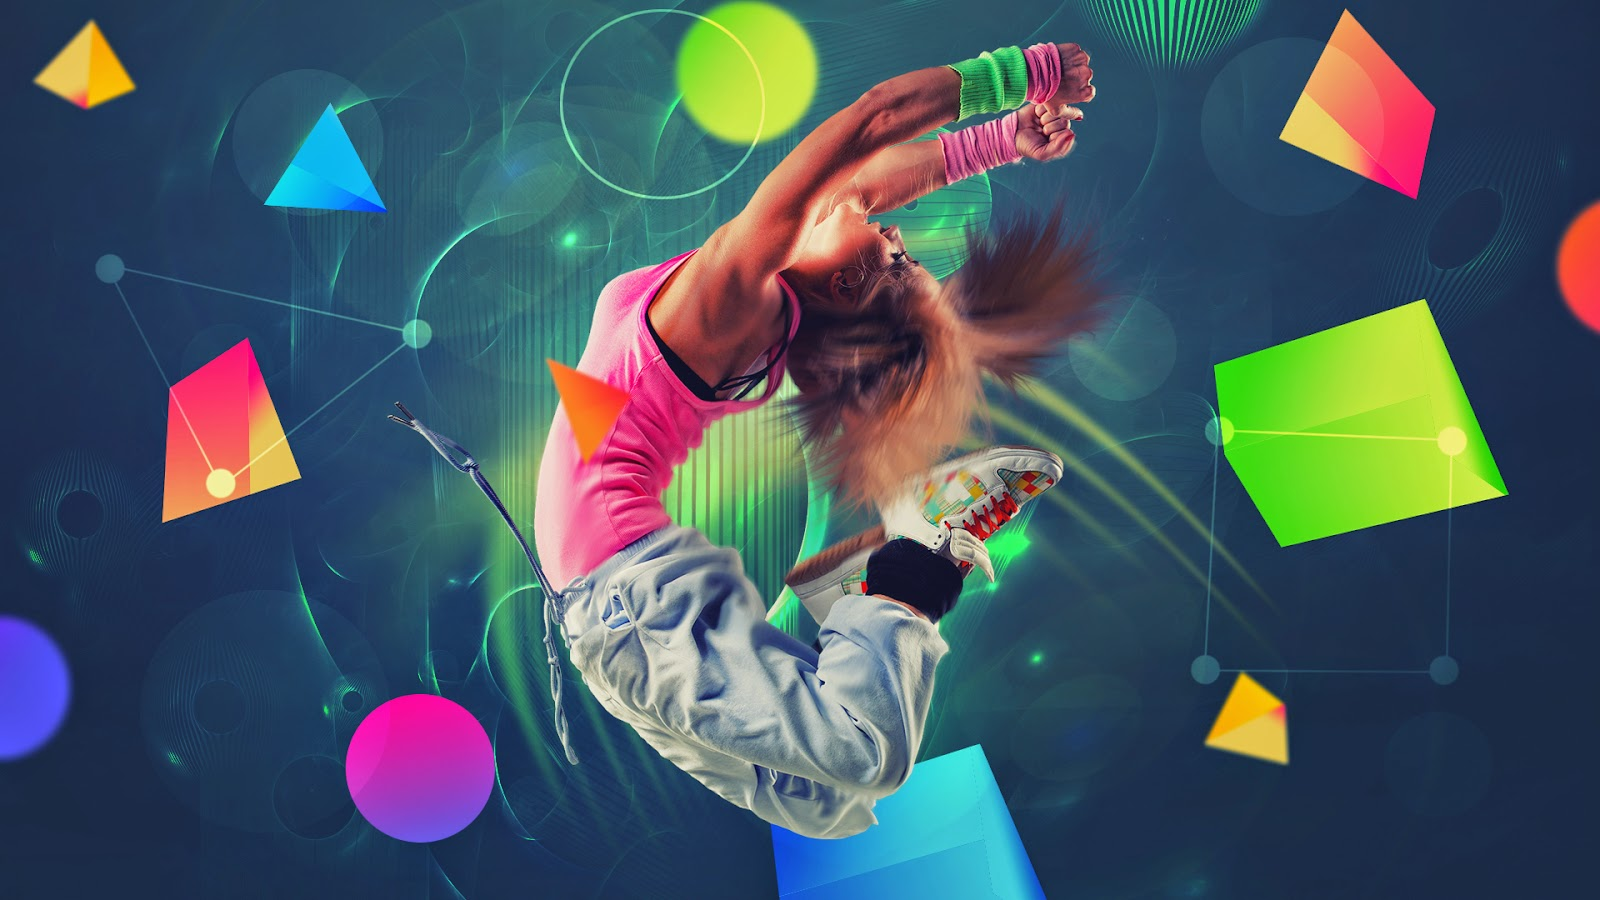 Ali Evans   Any body can dance Hip hop dance wallpapers 1600x900